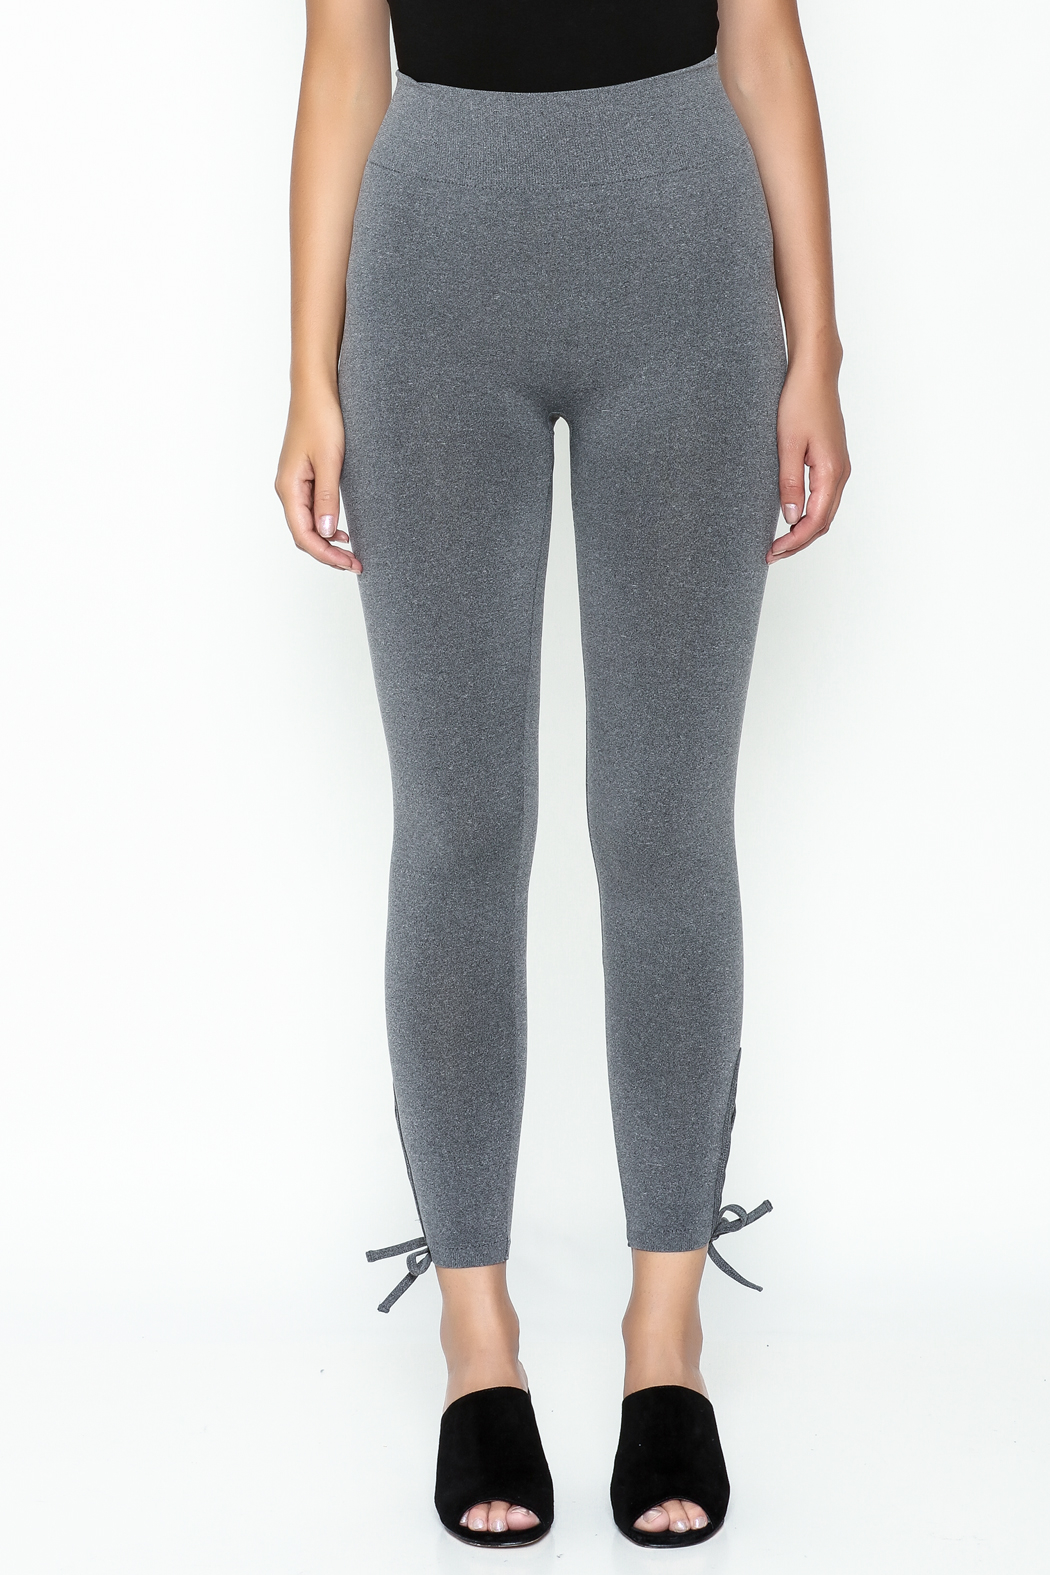 Private Label Criss Cross Leggings - Front Cropped Image